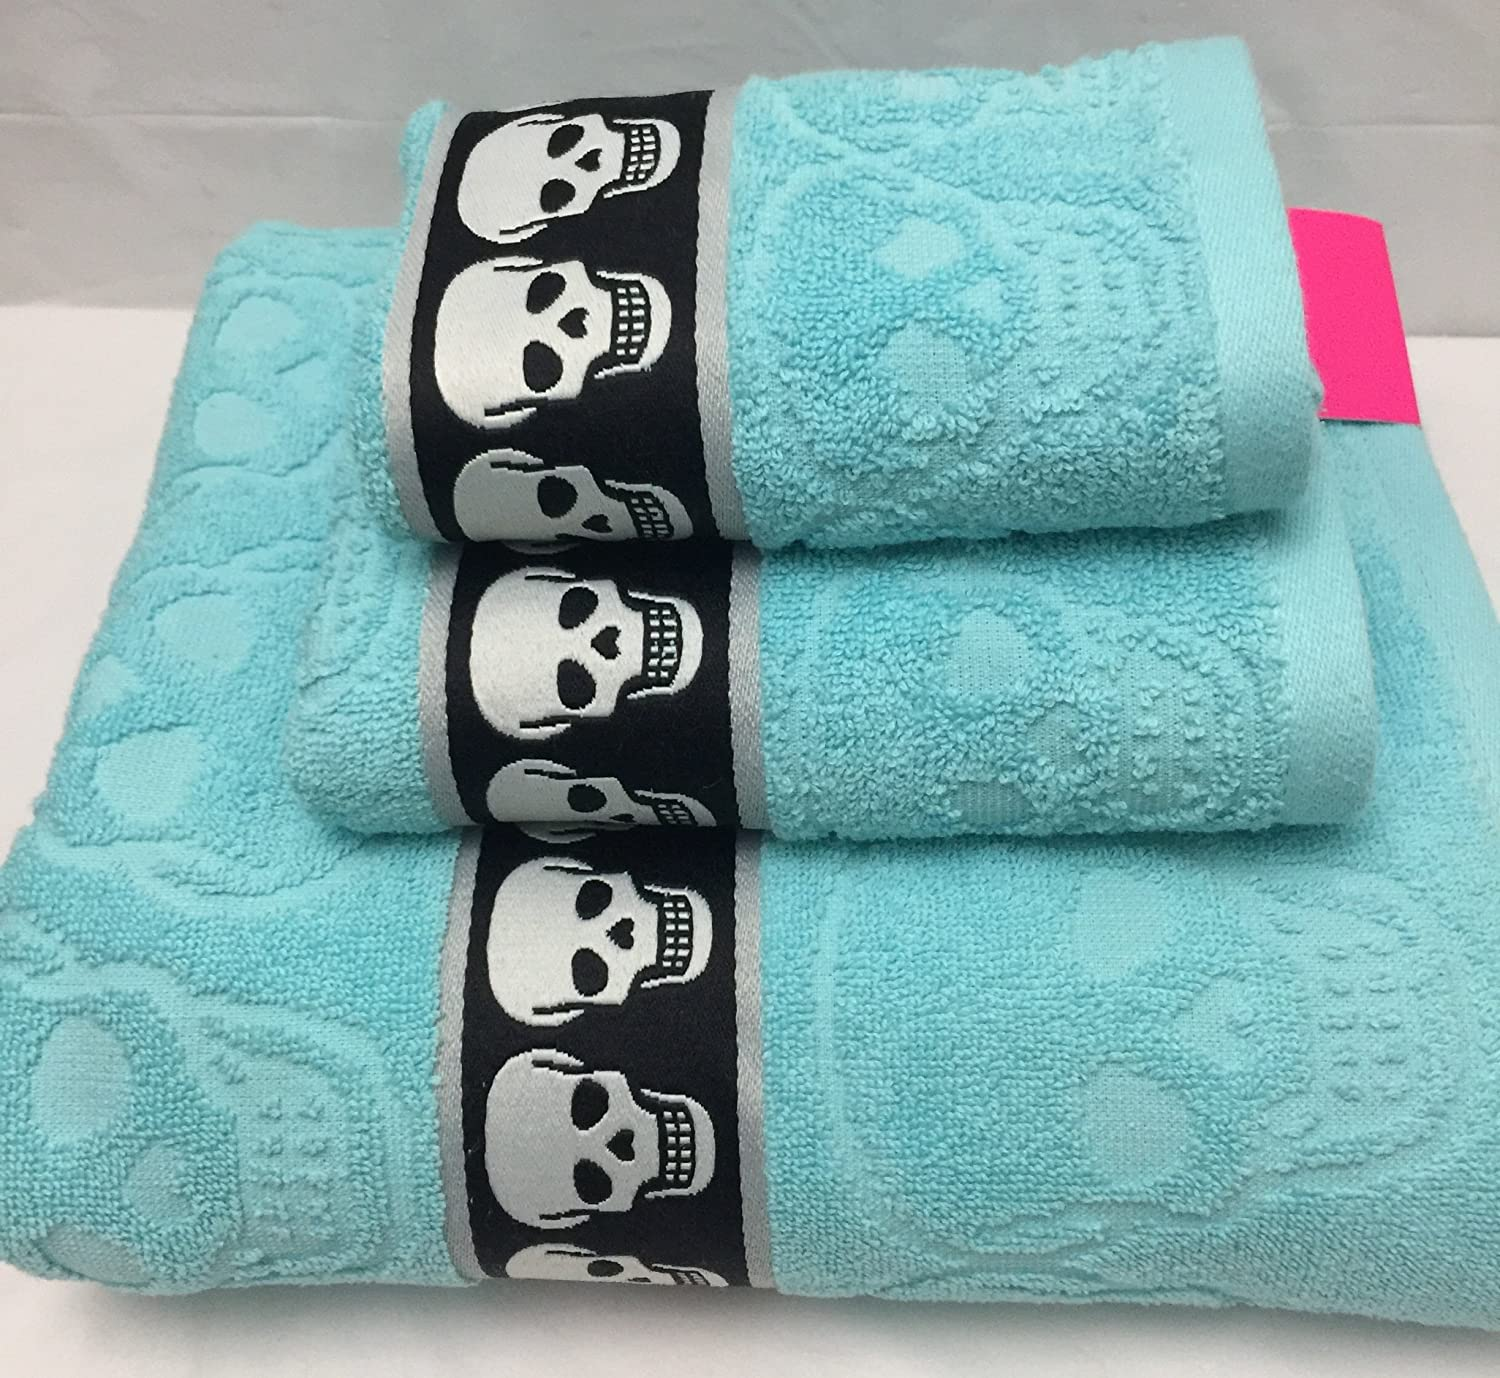 Amazon.com: Betsey Johnson Sculpted Skulls 3Pc Towel Set w/Bath ...